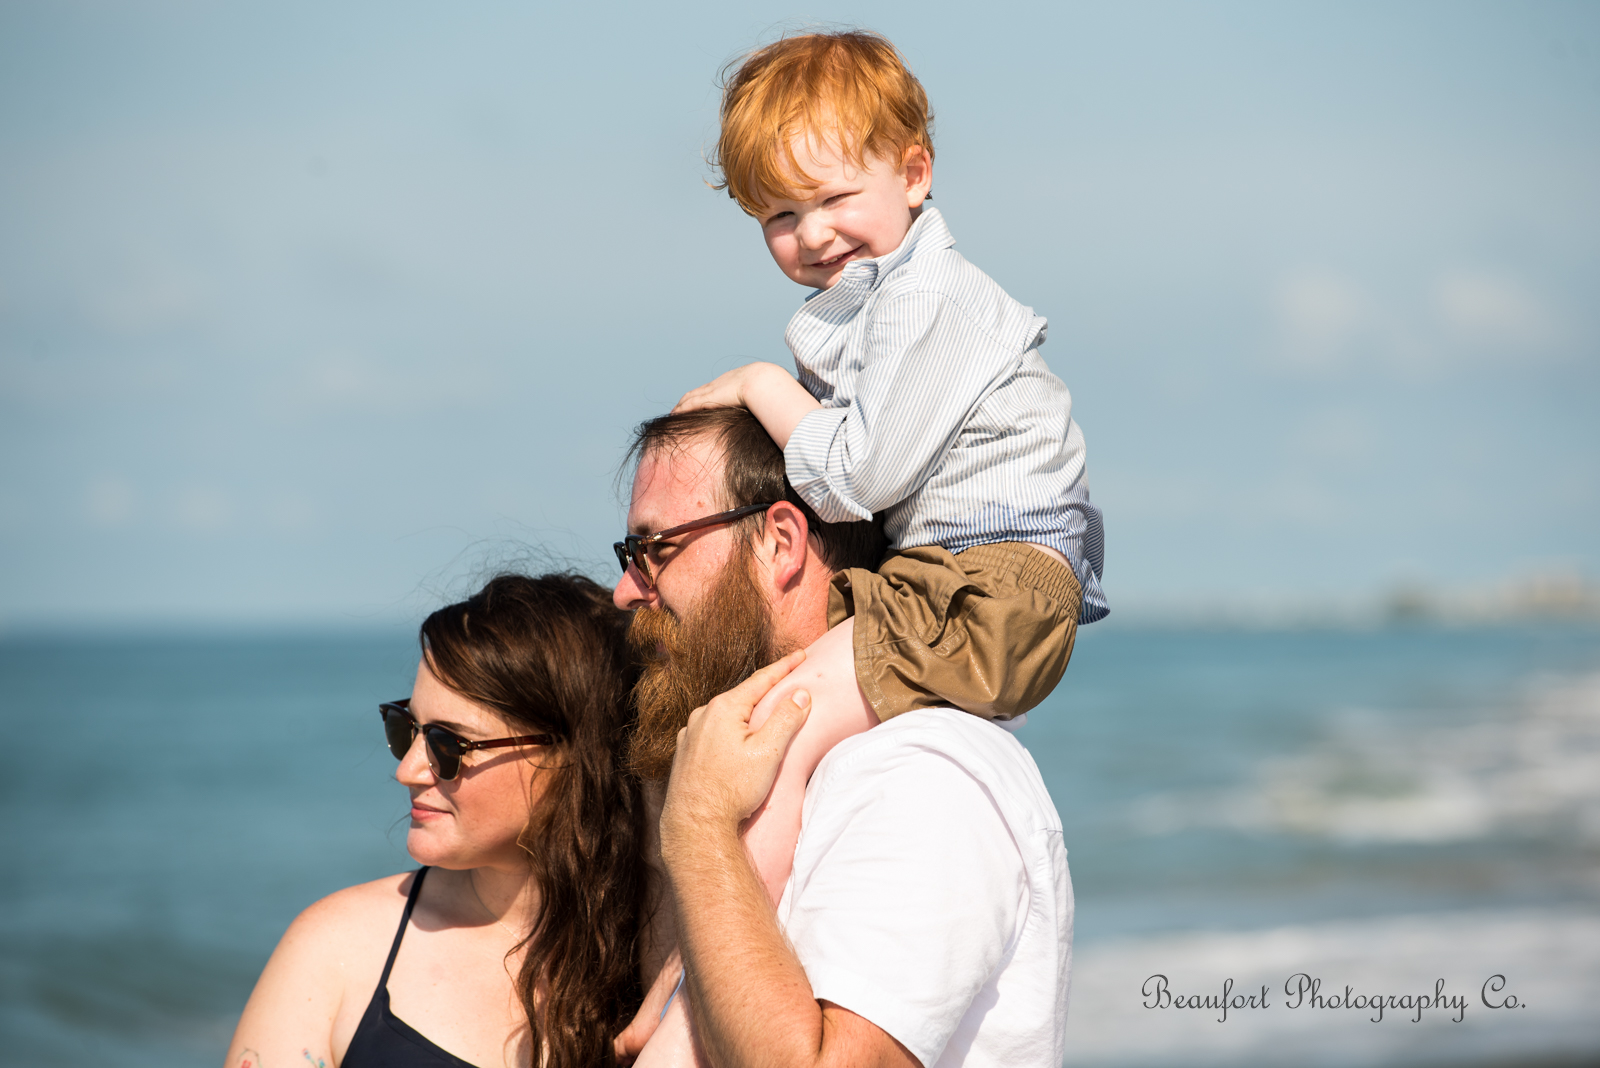 Beaufort Photography Co. lifestyle family portrait Beaufort Crystal Coast beach photo